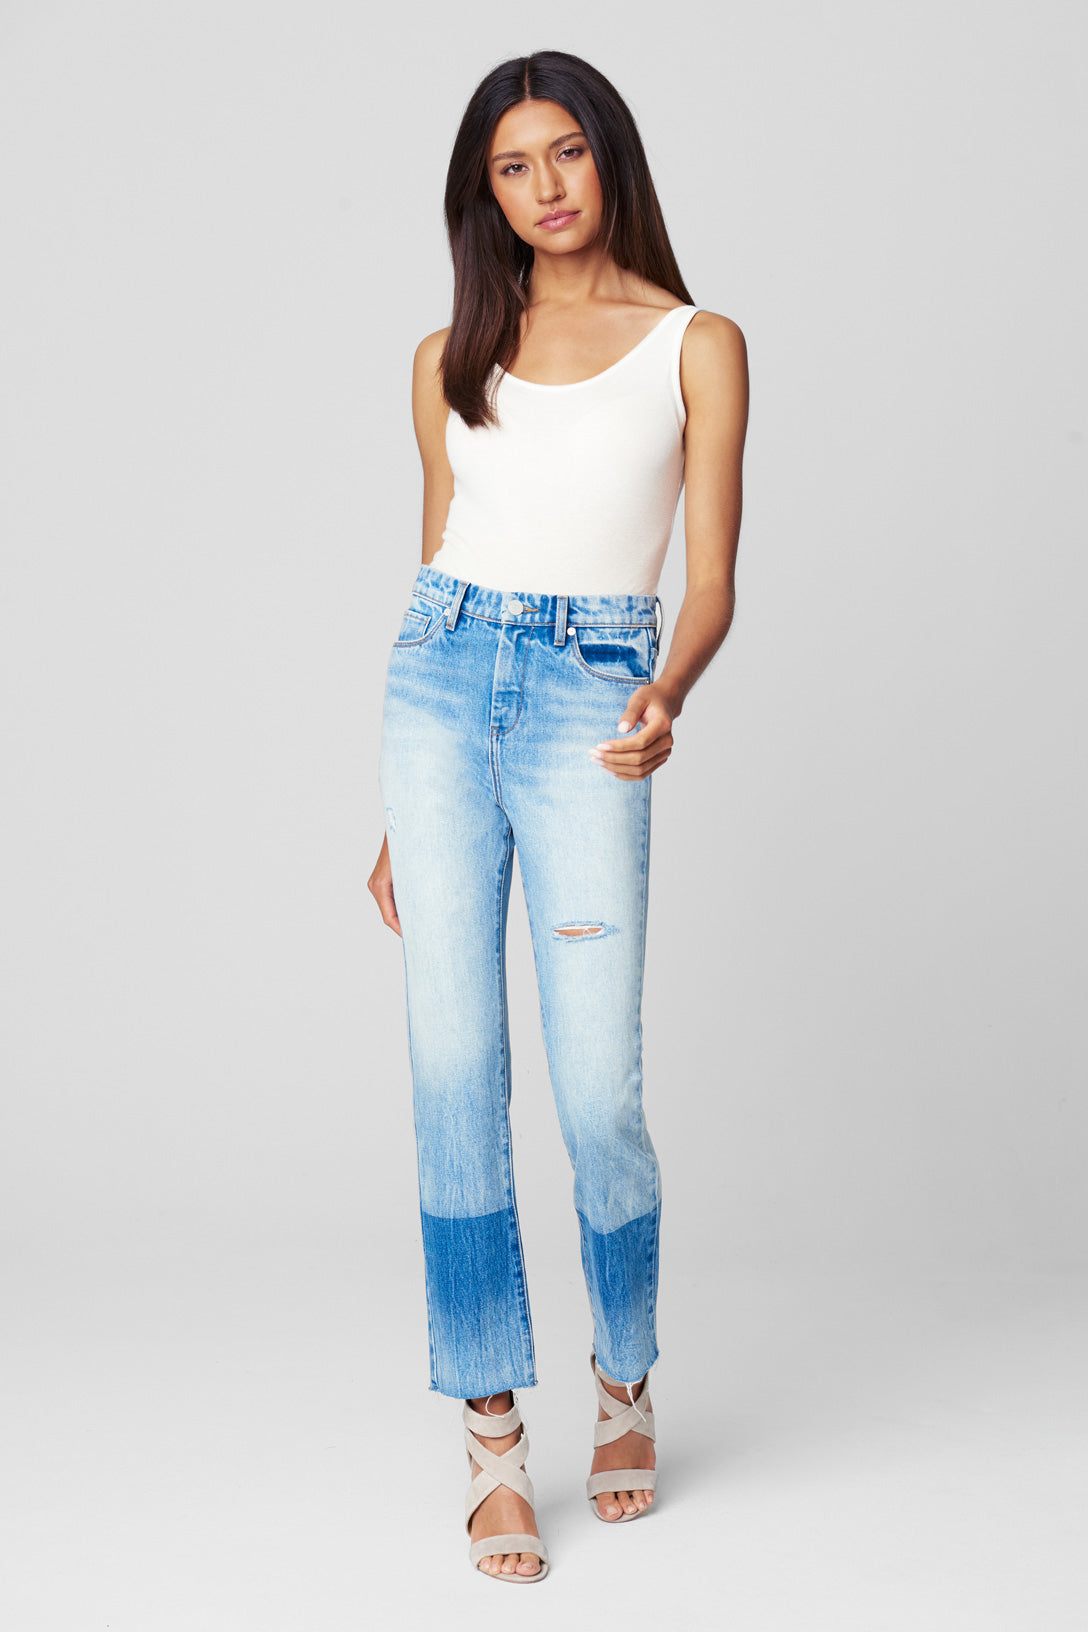 The Madison Crop in Side Lines | Blank NYC